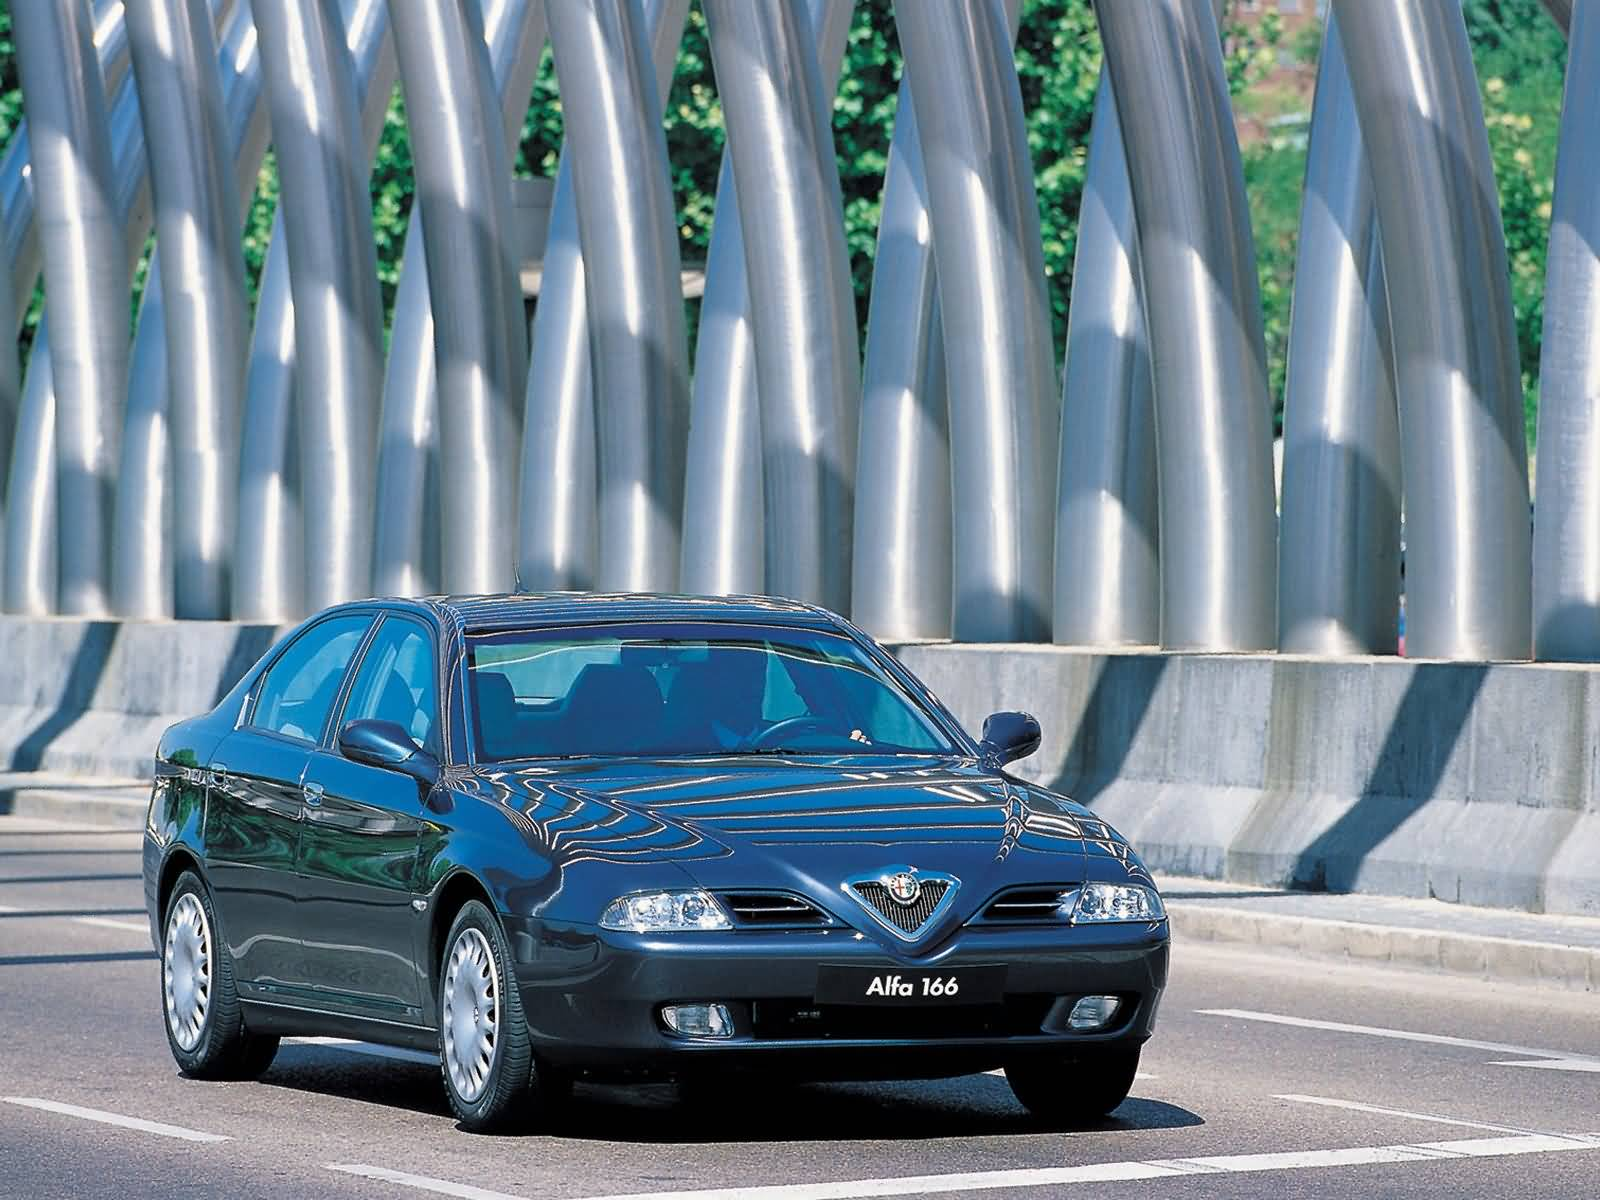 On the road beautiful Alfa Romeo 166 Car